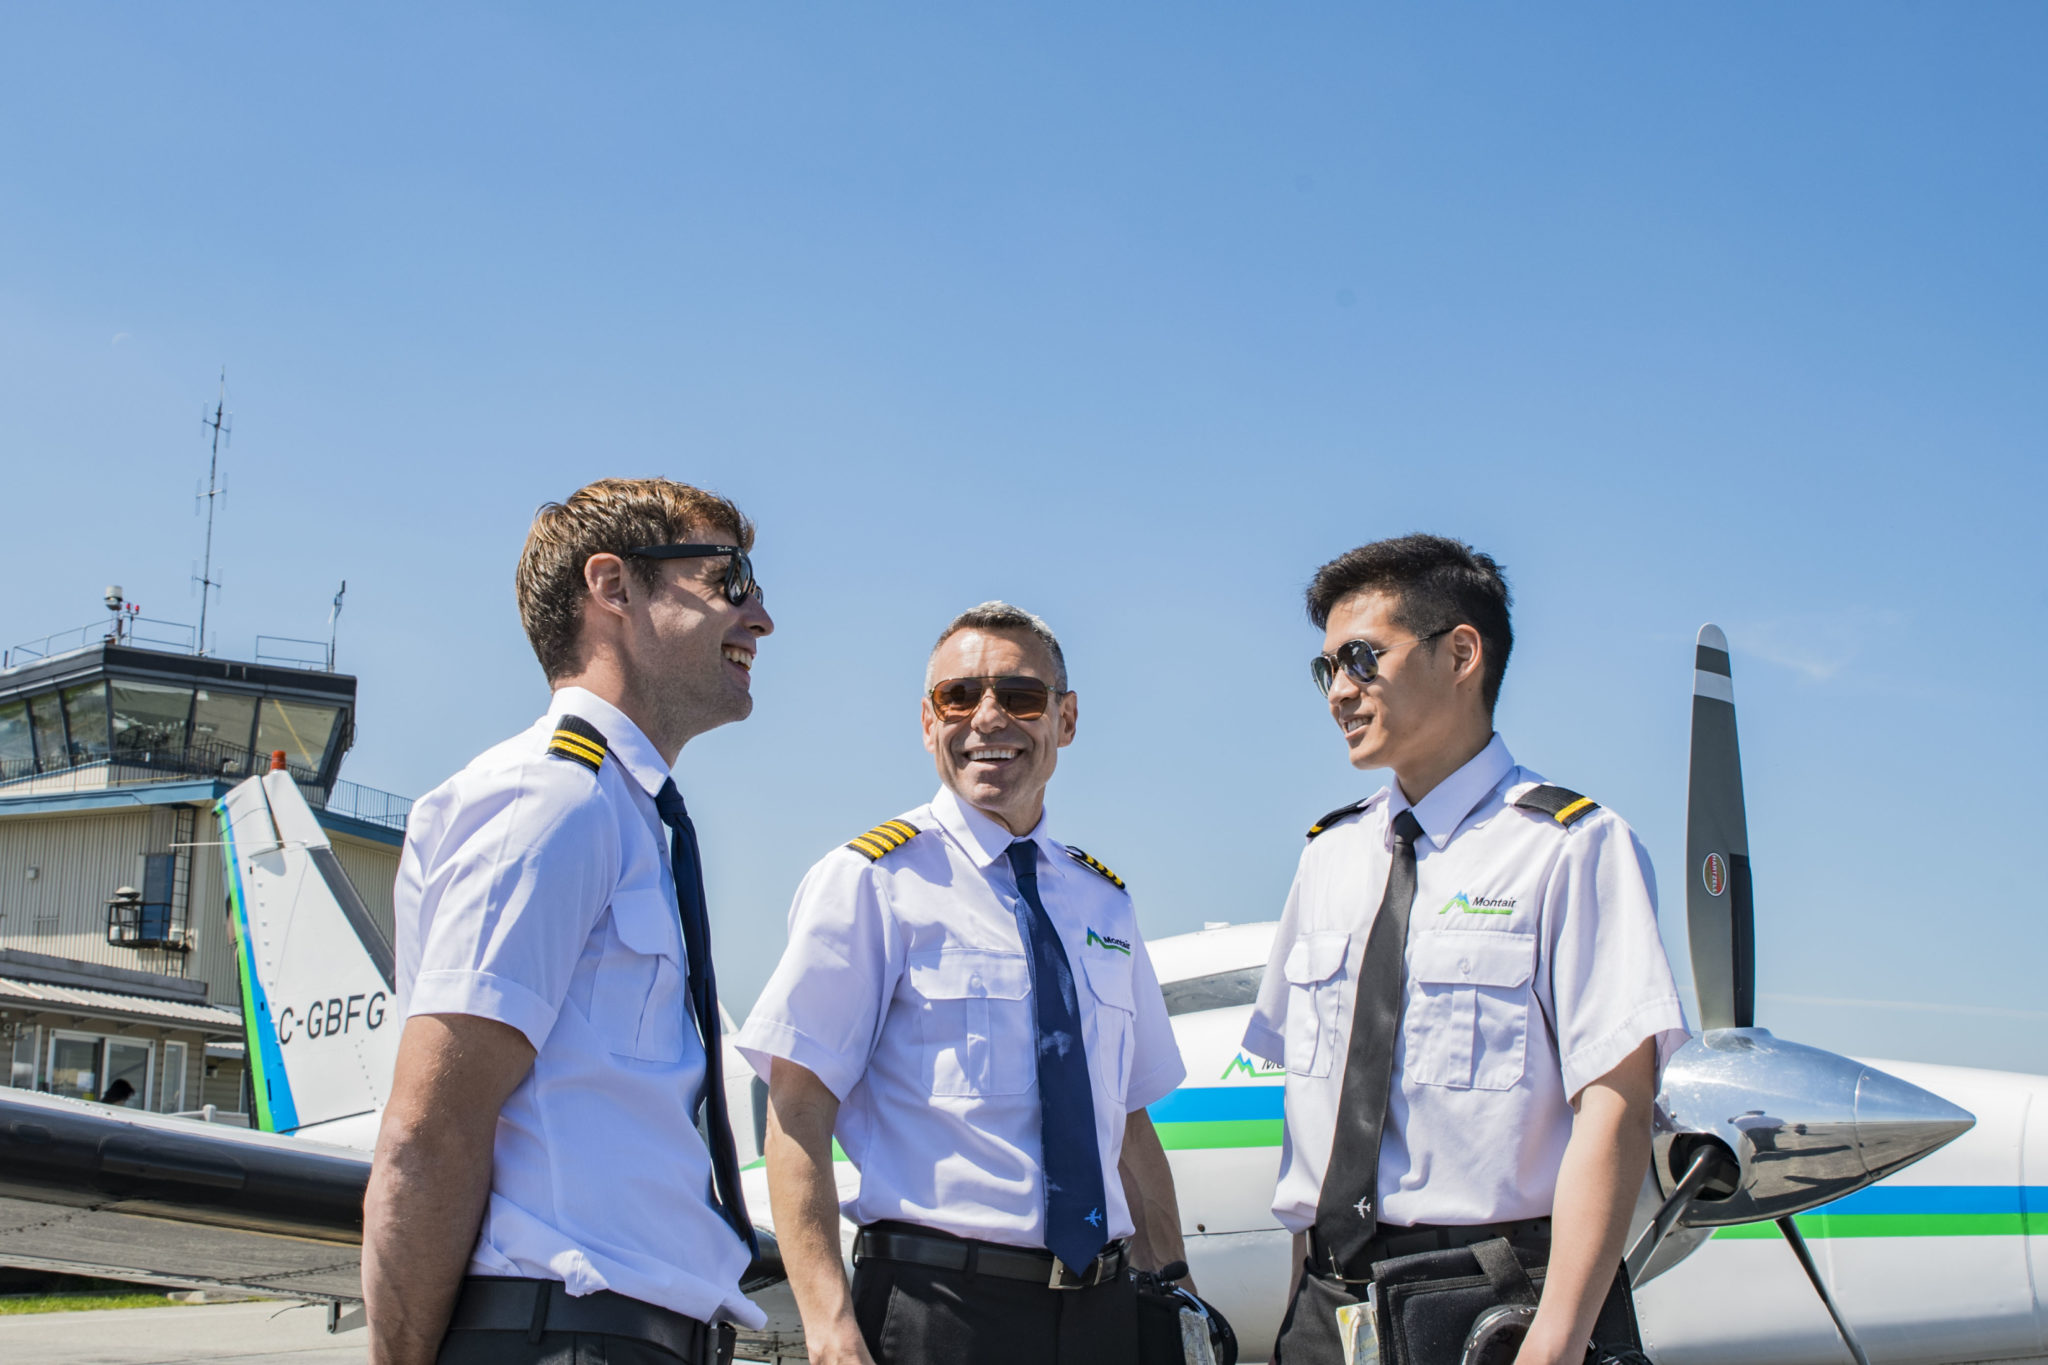 Montair flight instructors with student